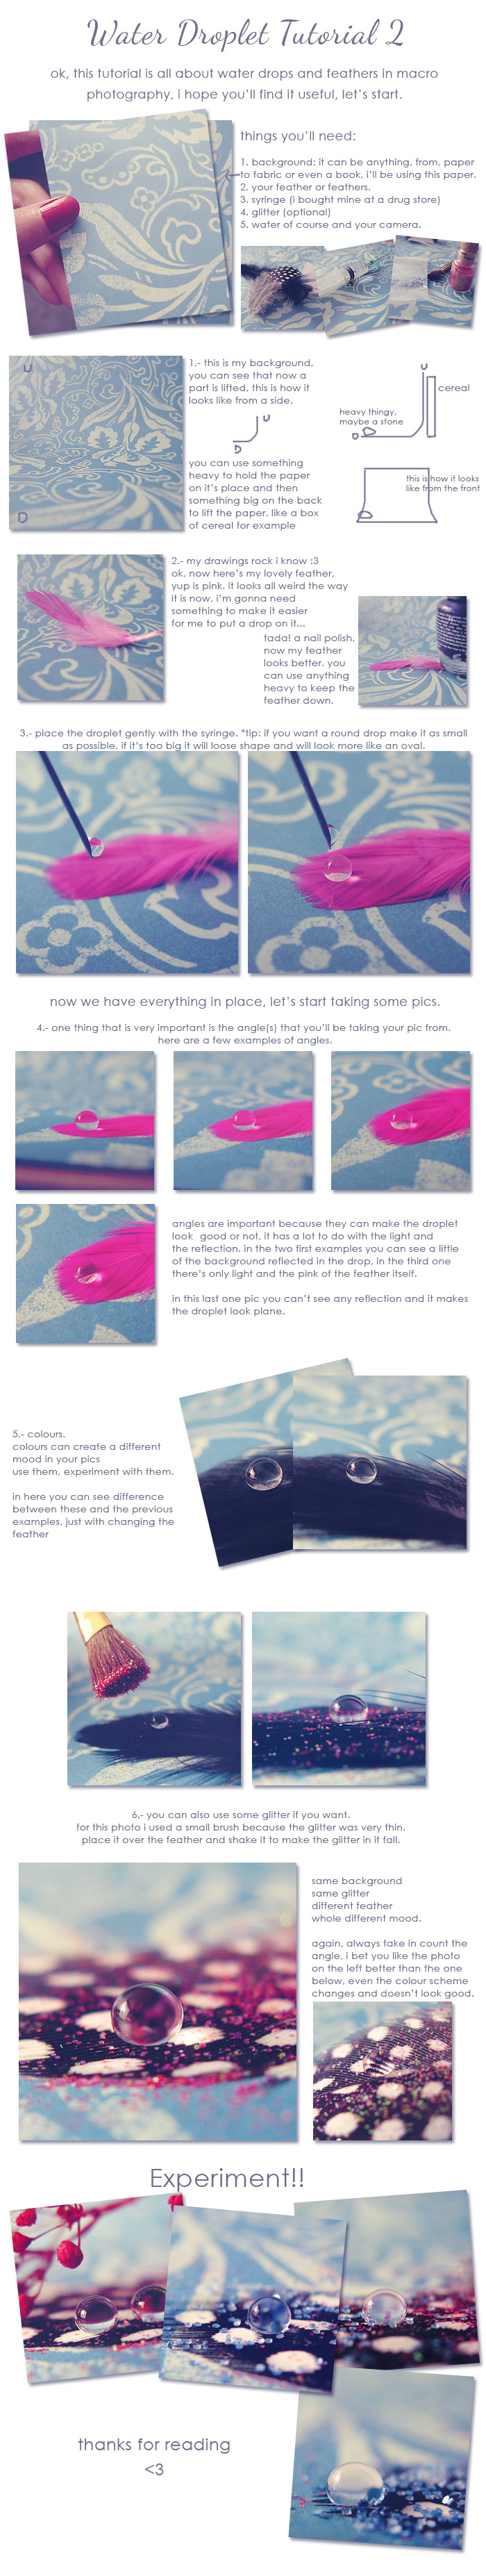 water droplet tutorial 2 by unread-story